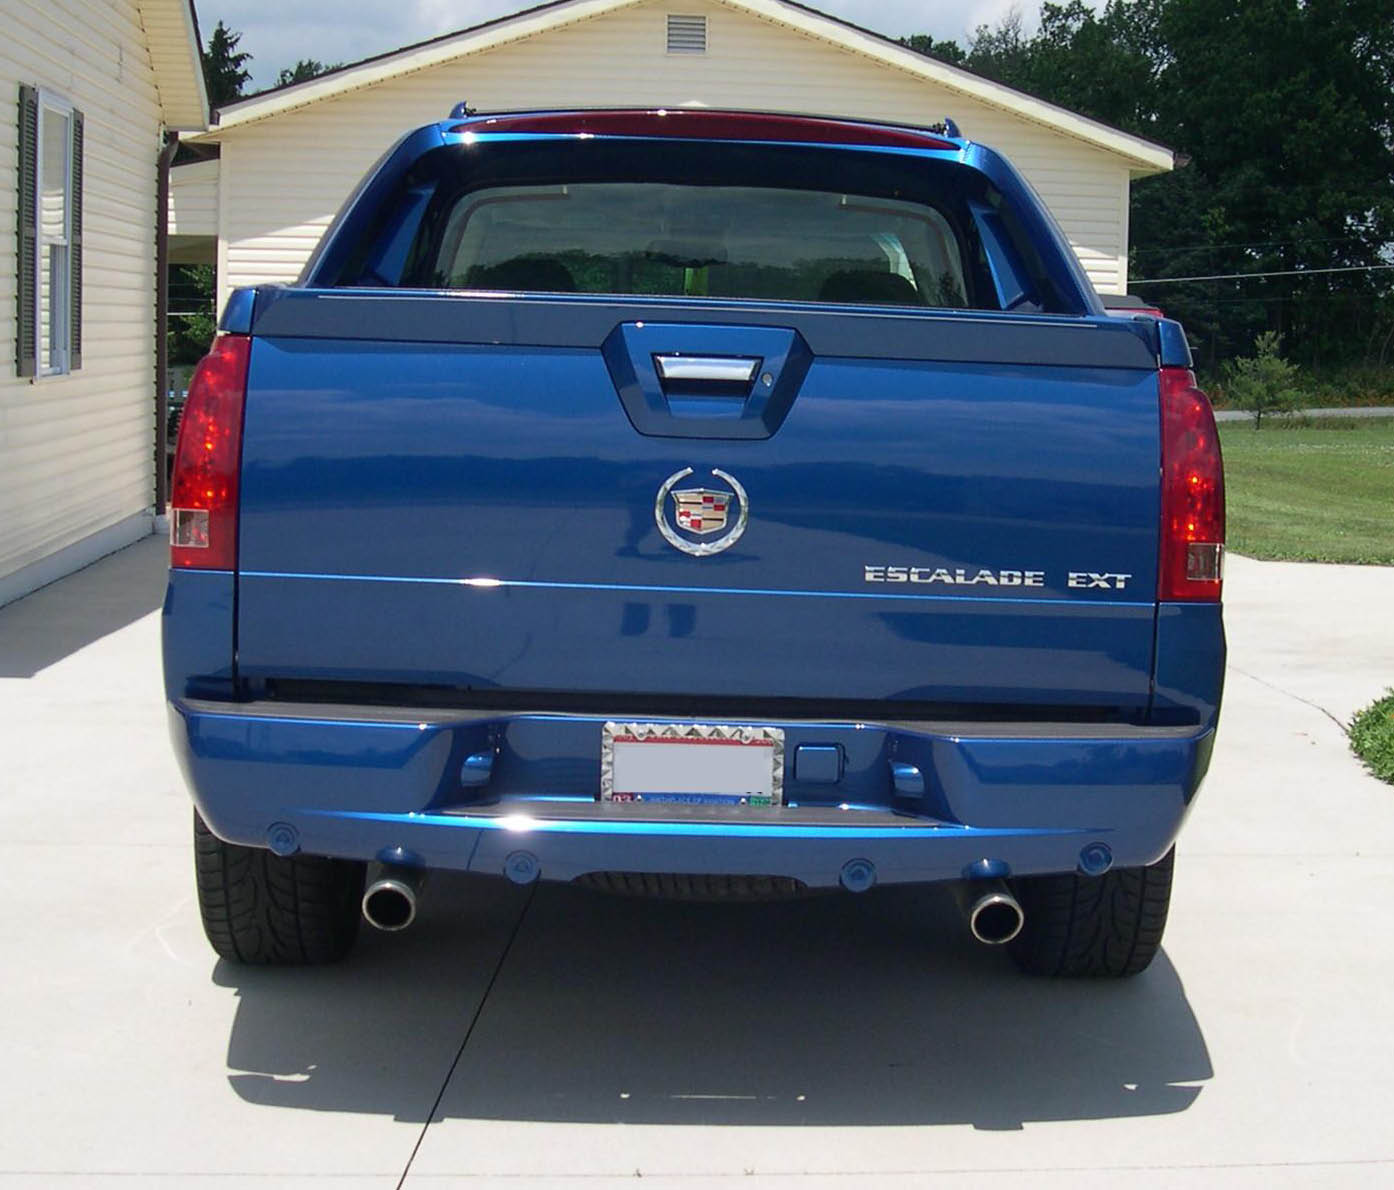 File:2003 Cadillac Escalade EXT rear.JPG - Wikimedia Commons